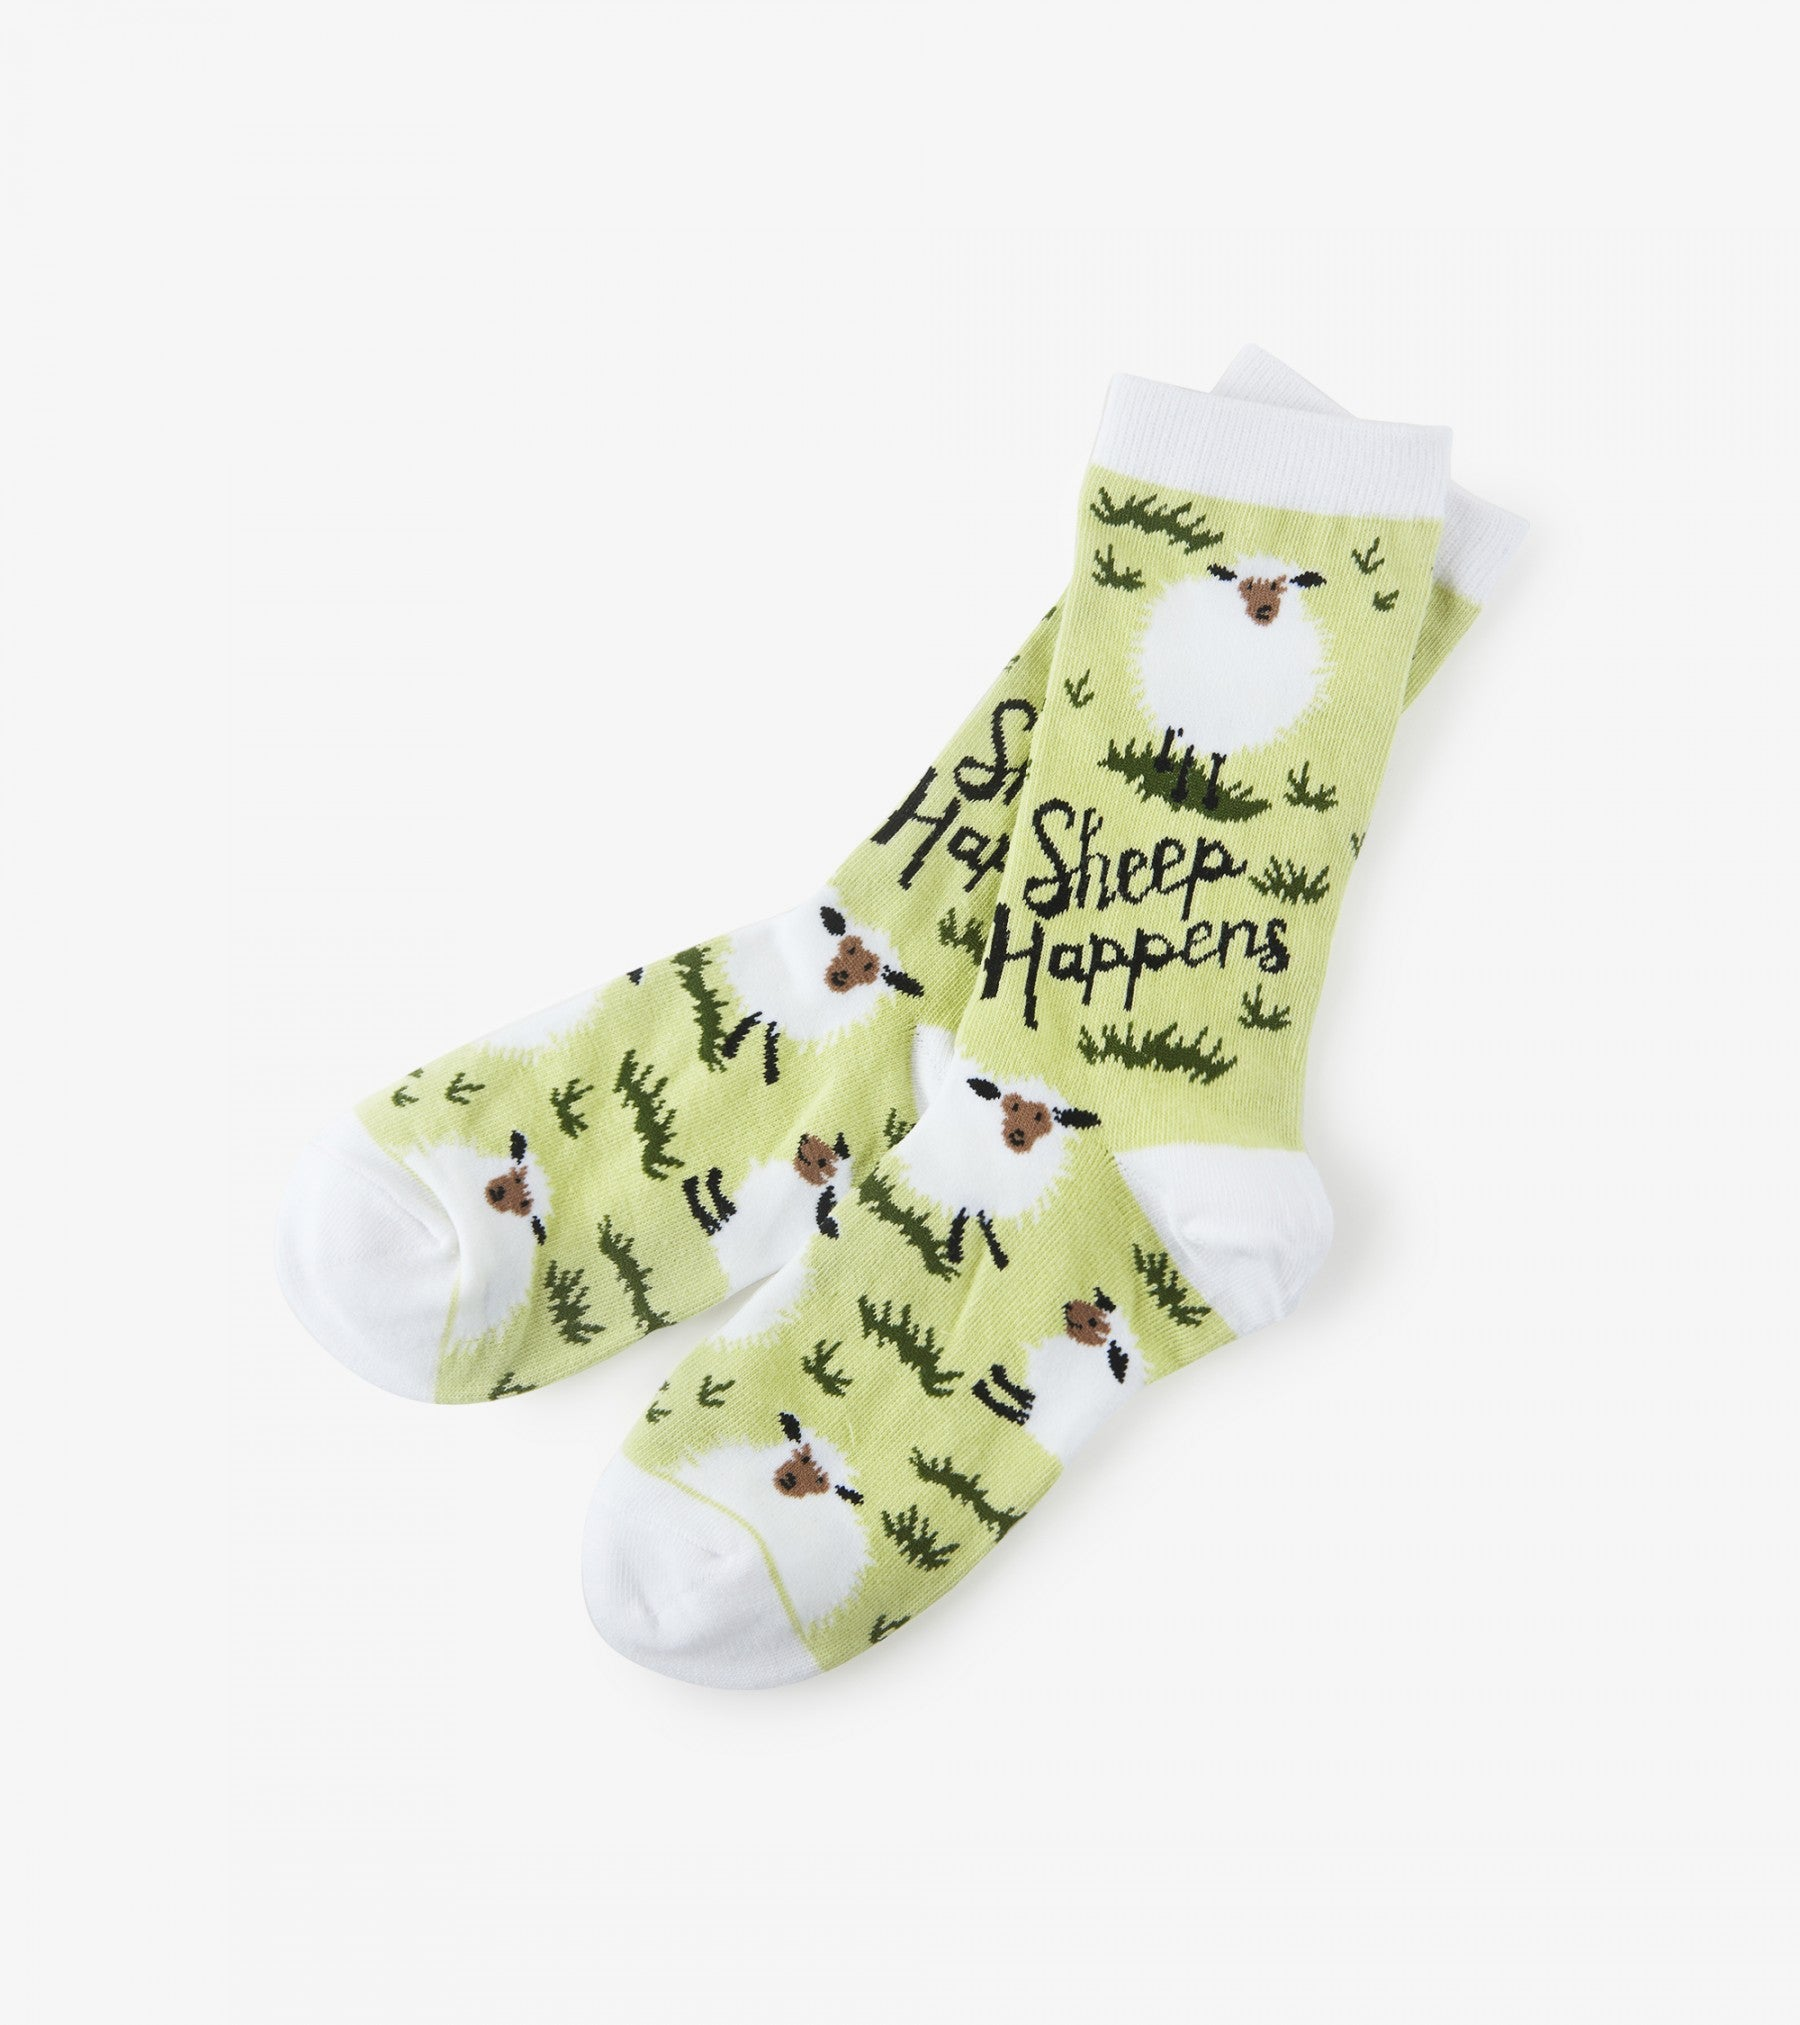 Sheep Happens Women's Crew Socks